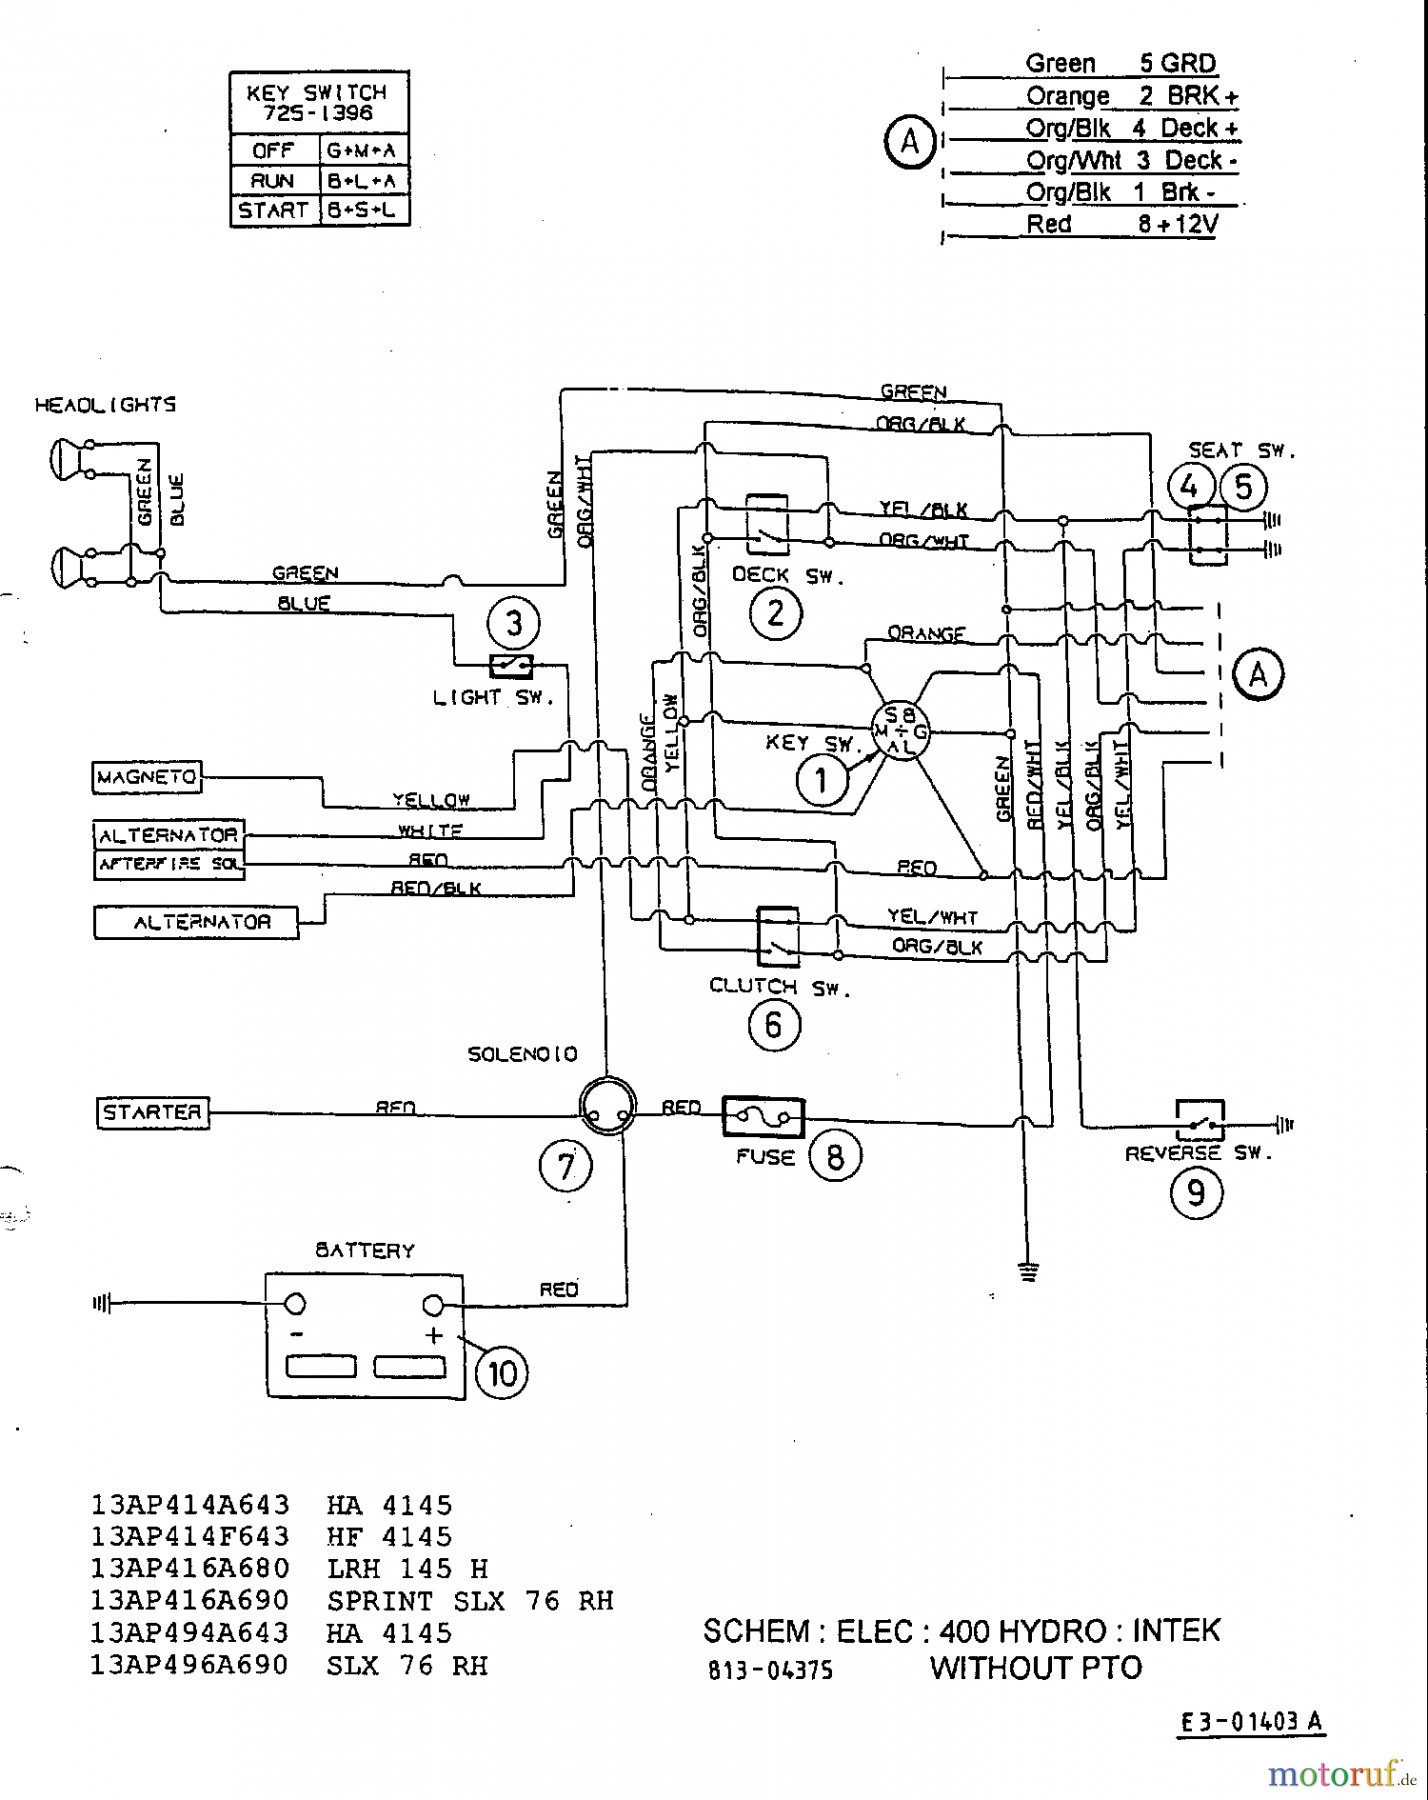 146s849h205 mtd wiring diagram yardman mtd wiring diagram mtd riding lawn mower wiring diagram | free wiring diagram